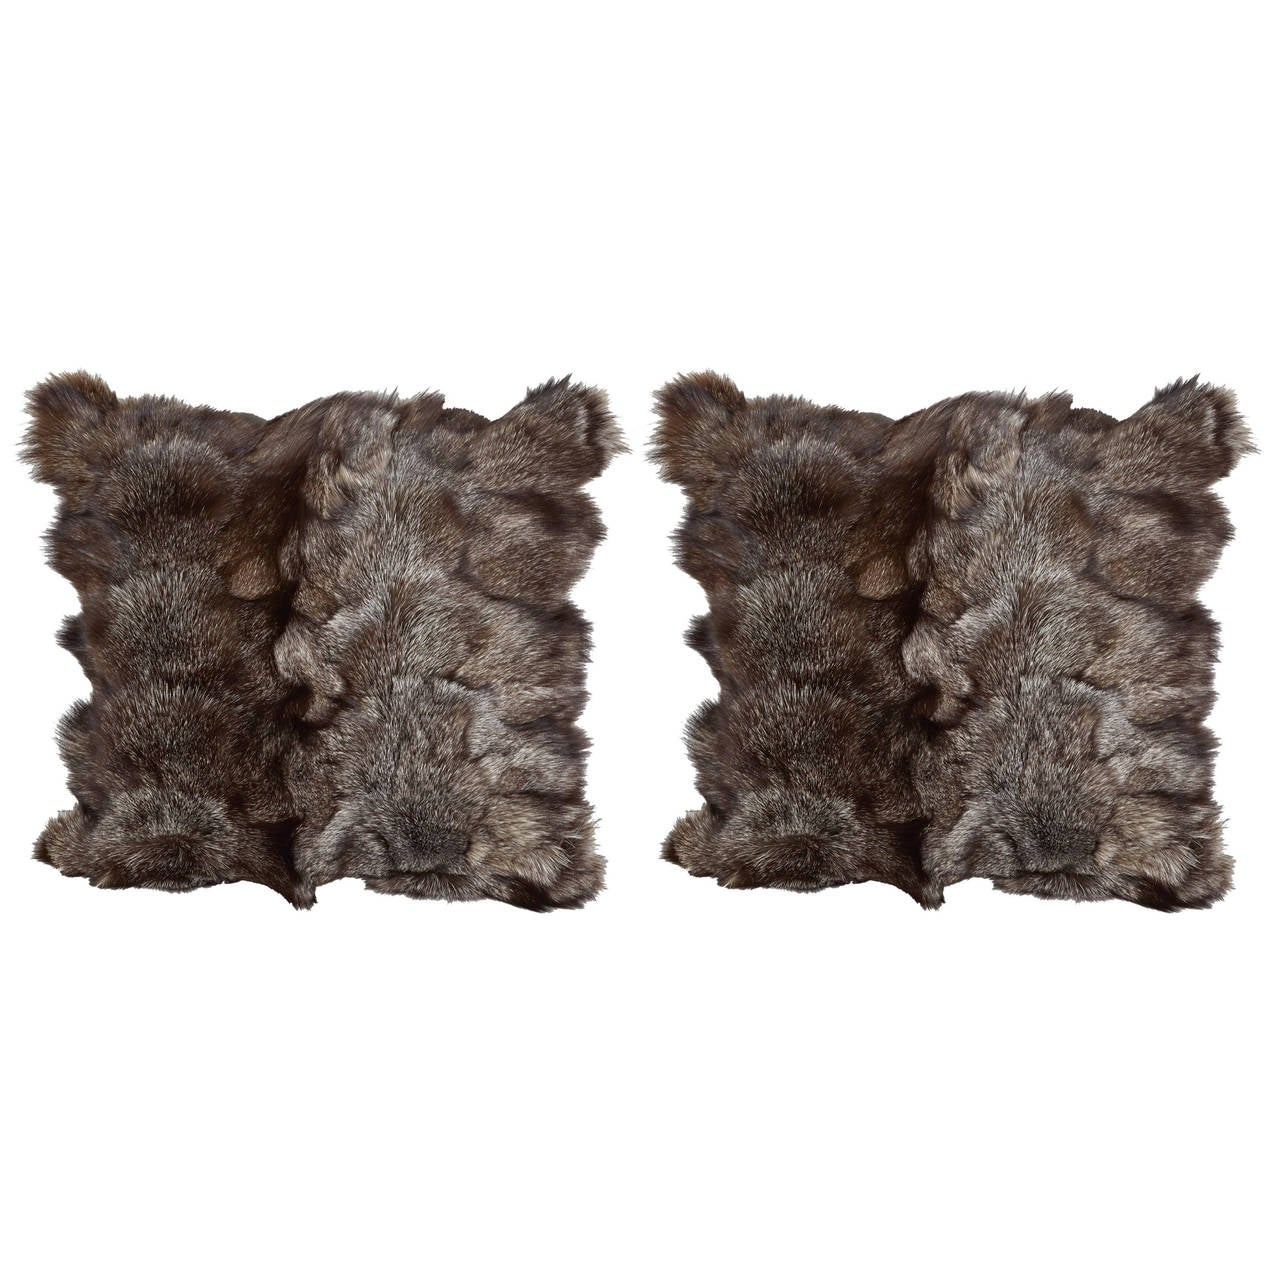 Ultra Luxe Fox Fur Pillows in Hues of Grey 1